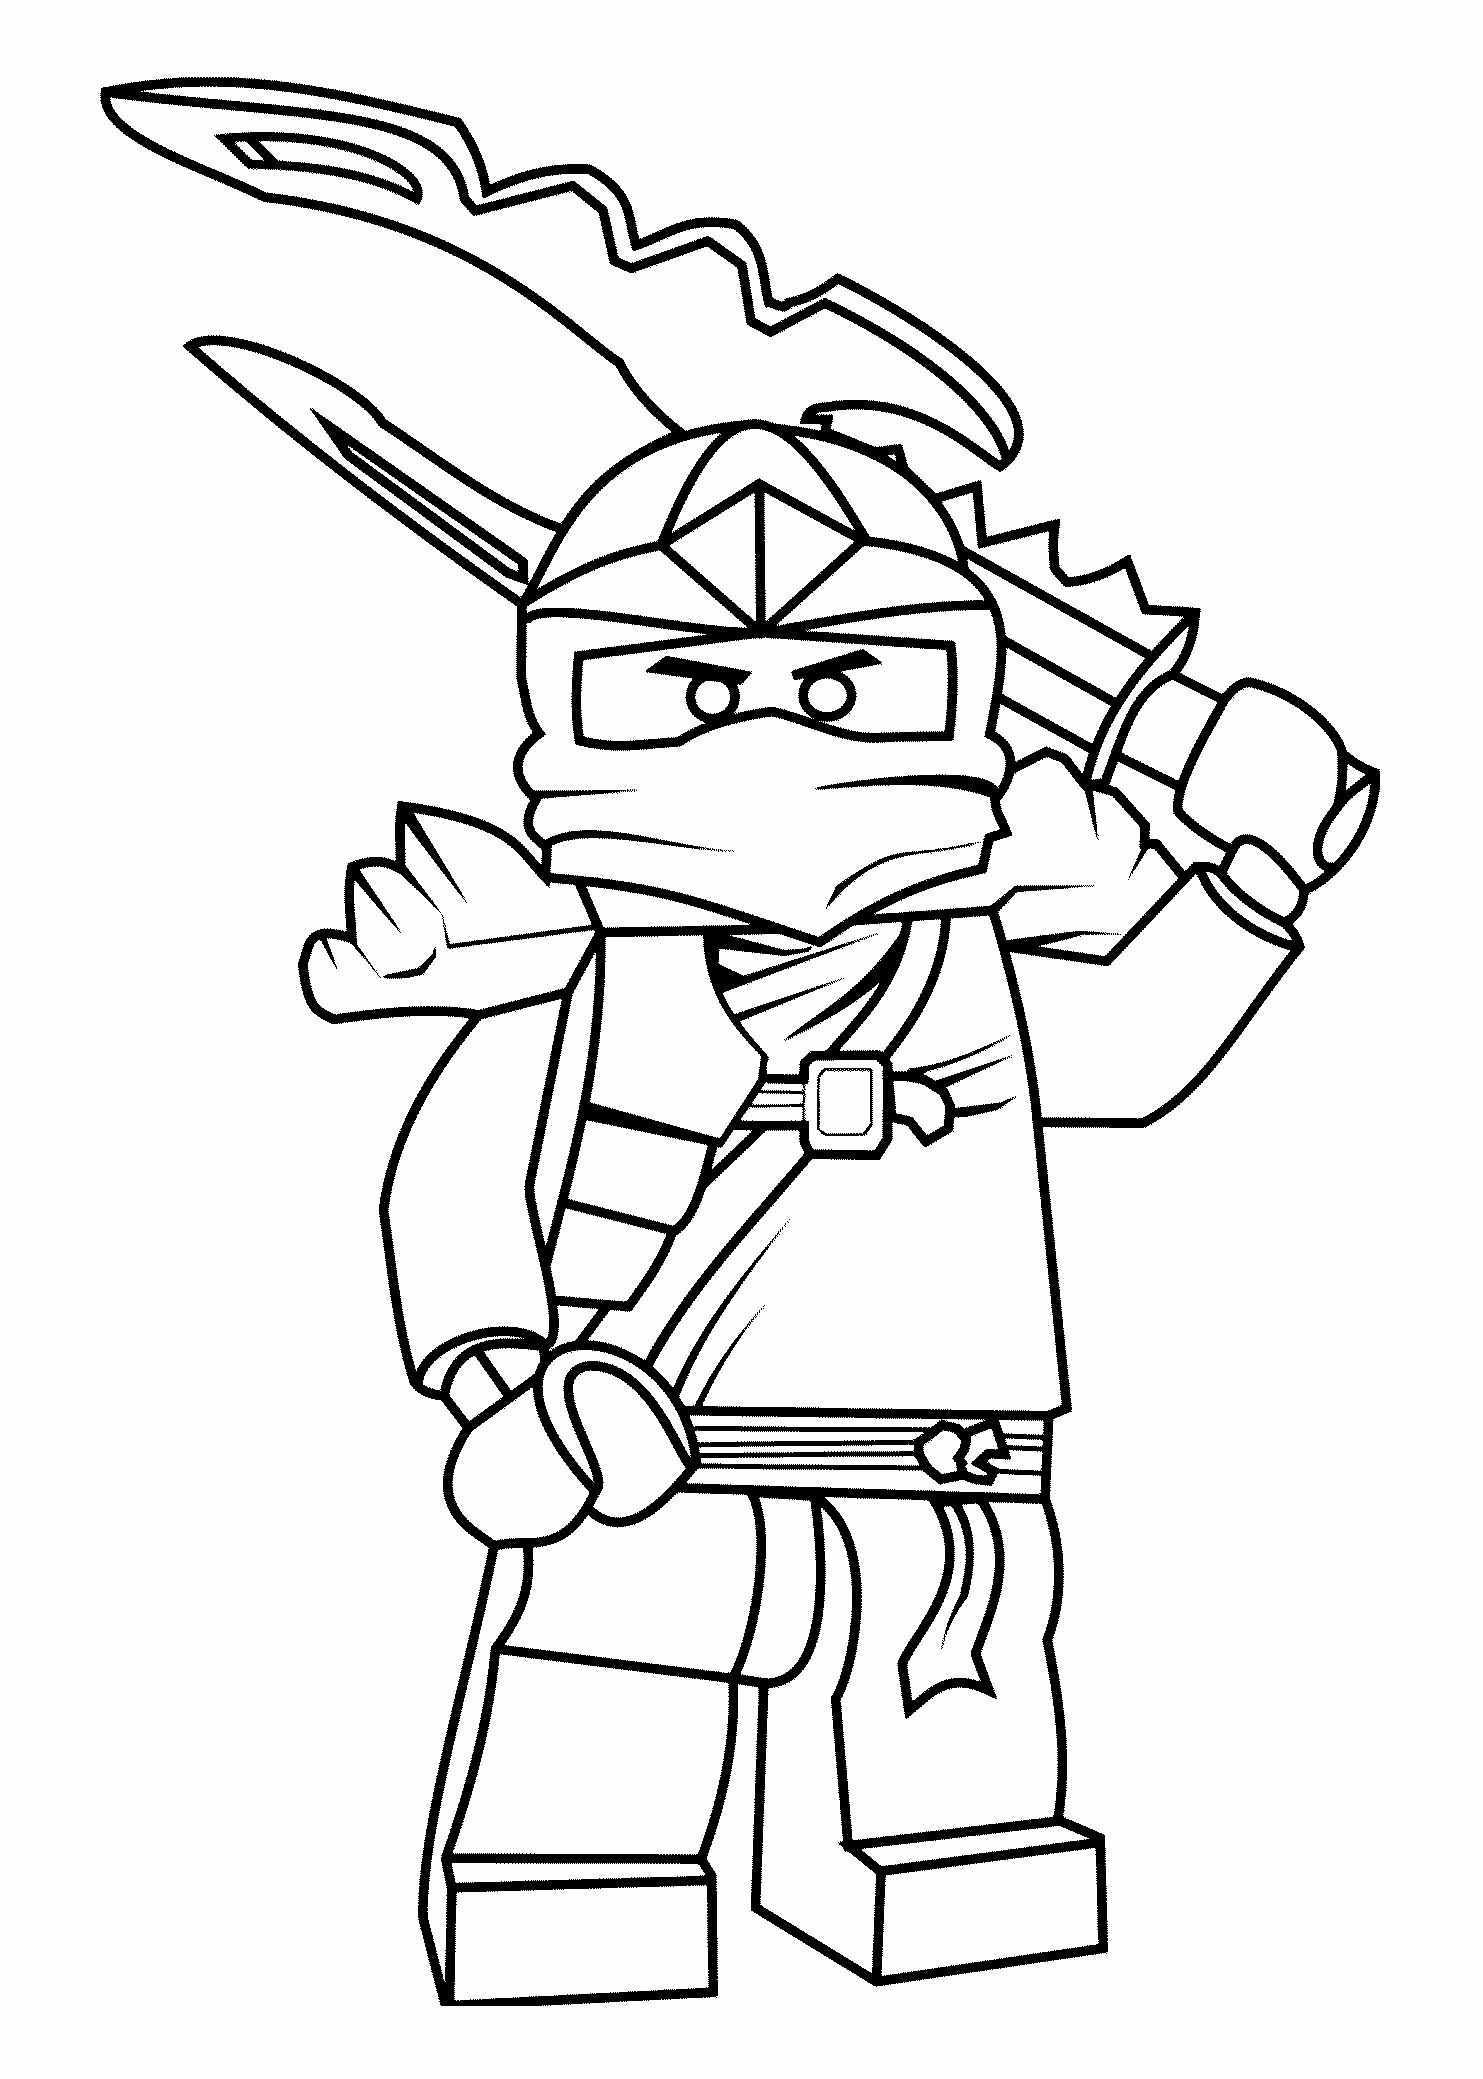 Jay Ninjago Coloring Page New Ninjago Coloring Pages For Kids